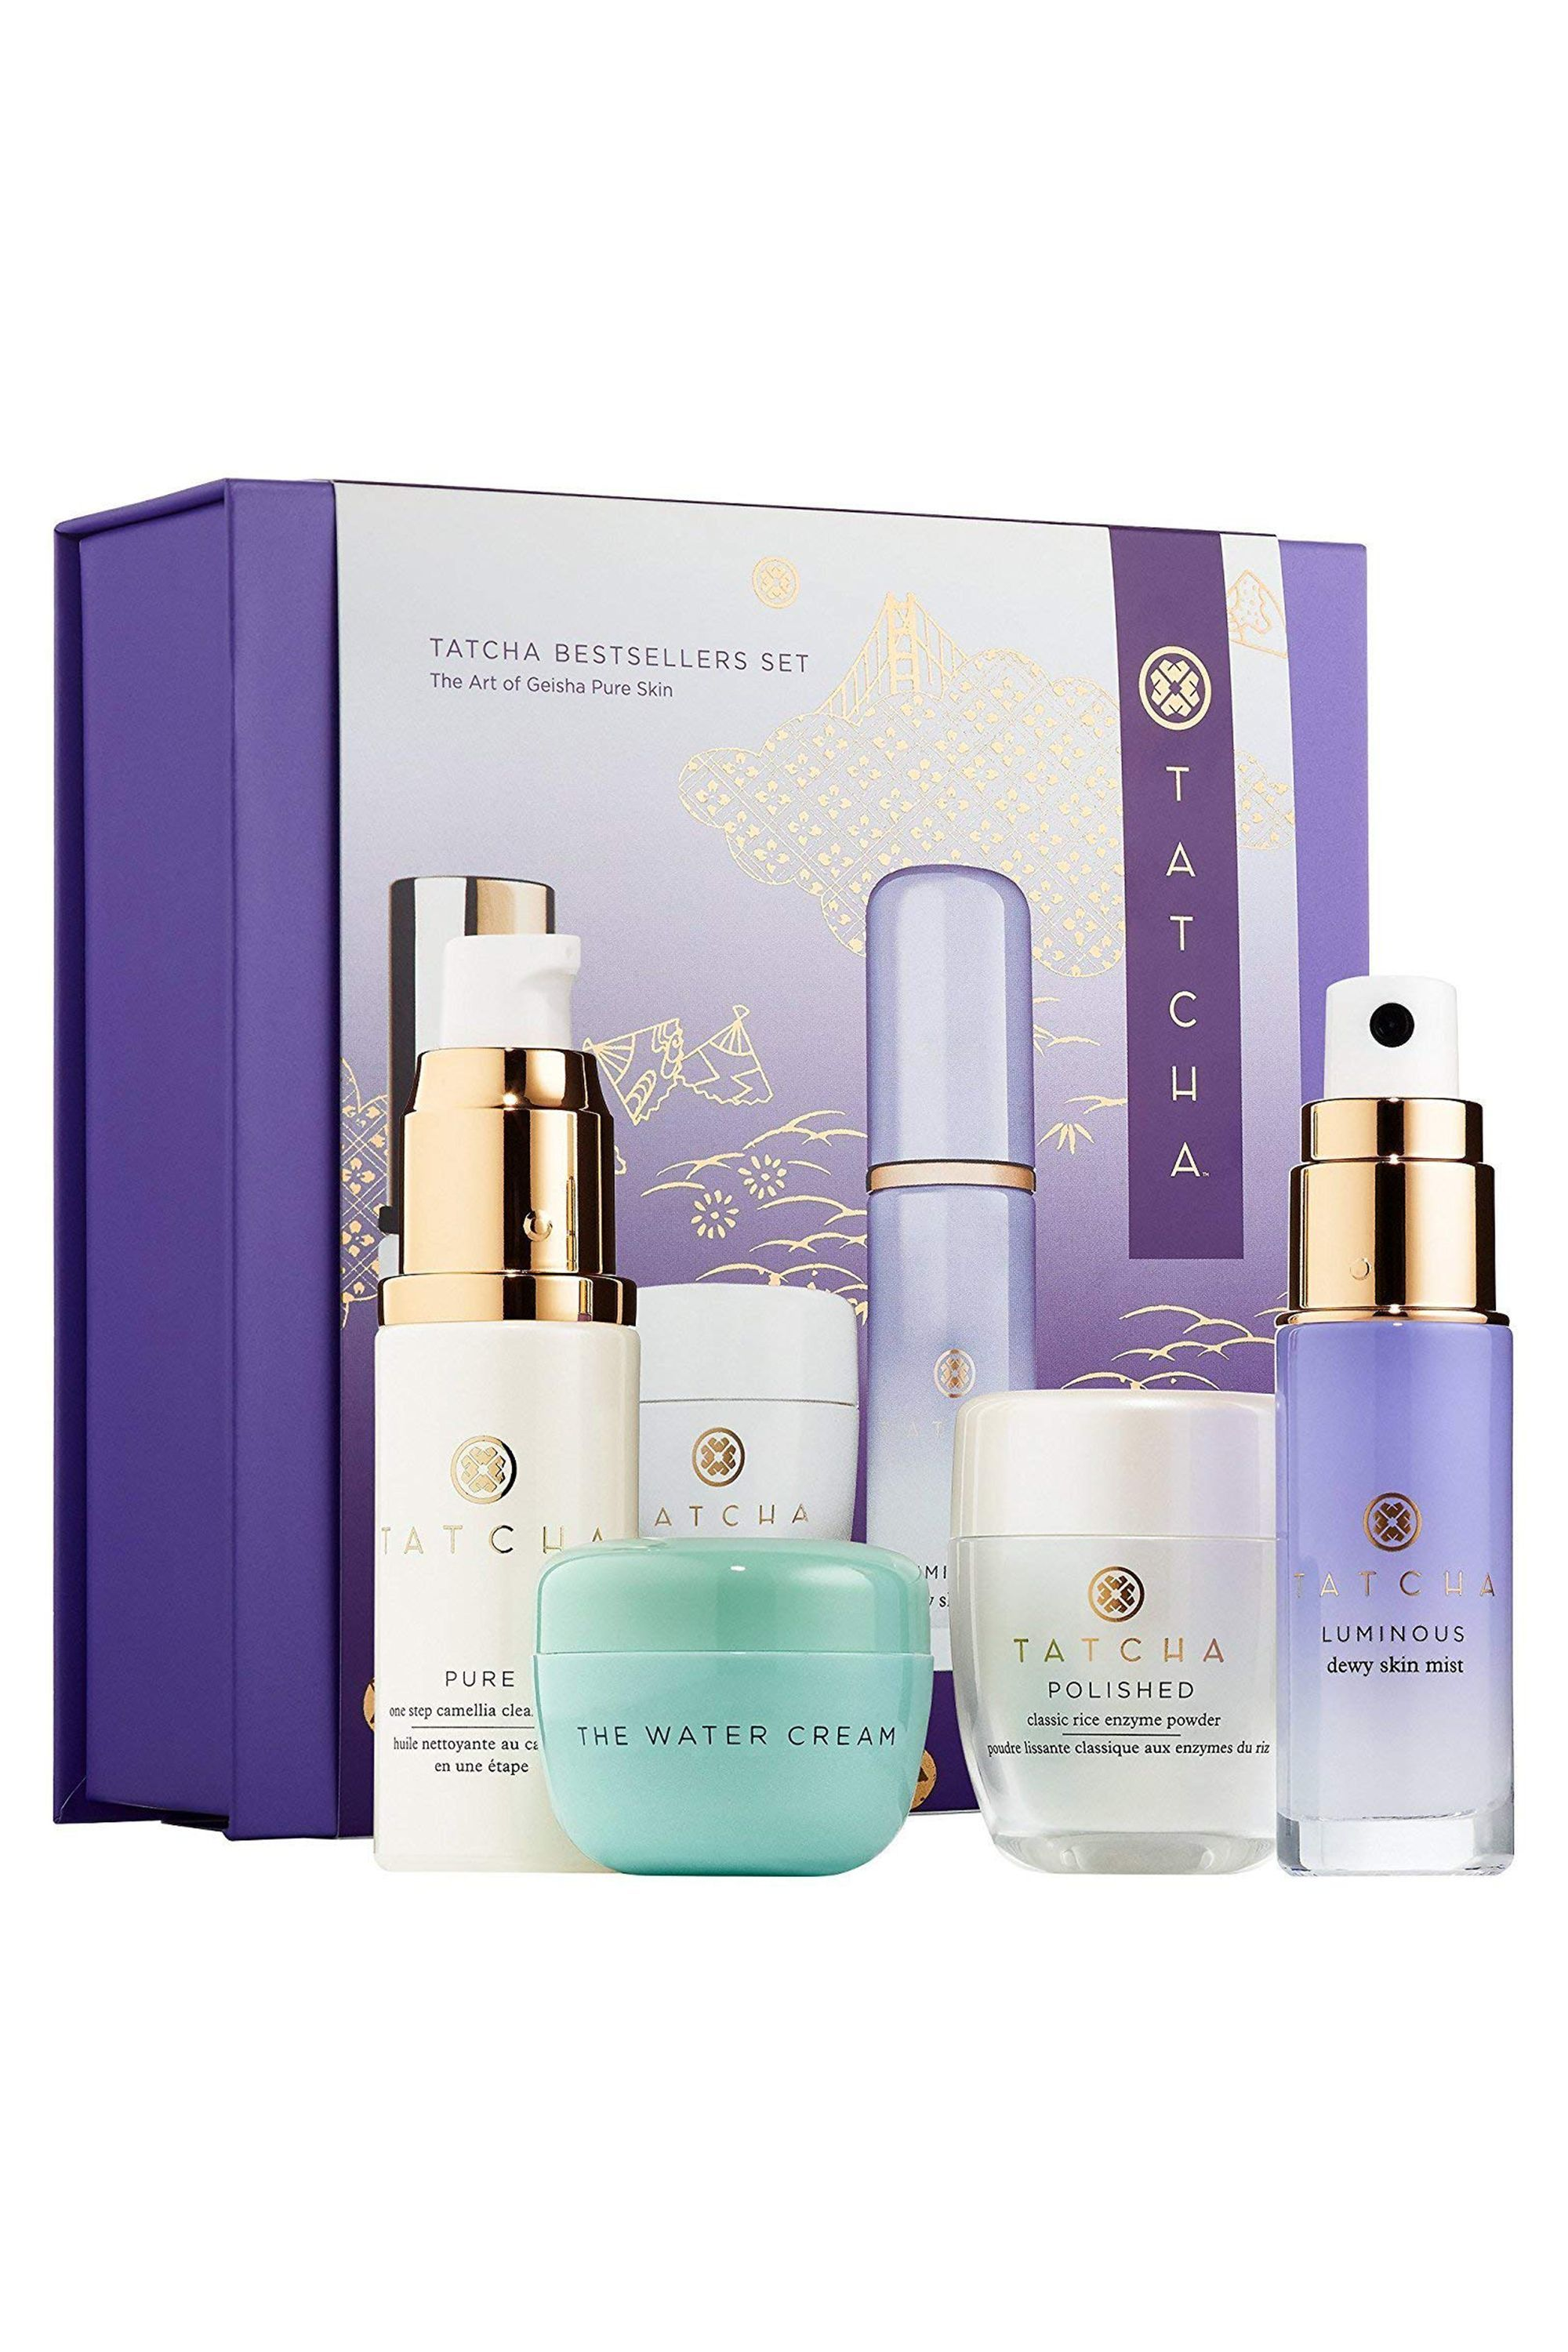 The Best Skincare Bundles Sets 2020 For All Types Of Skin Issues And Types